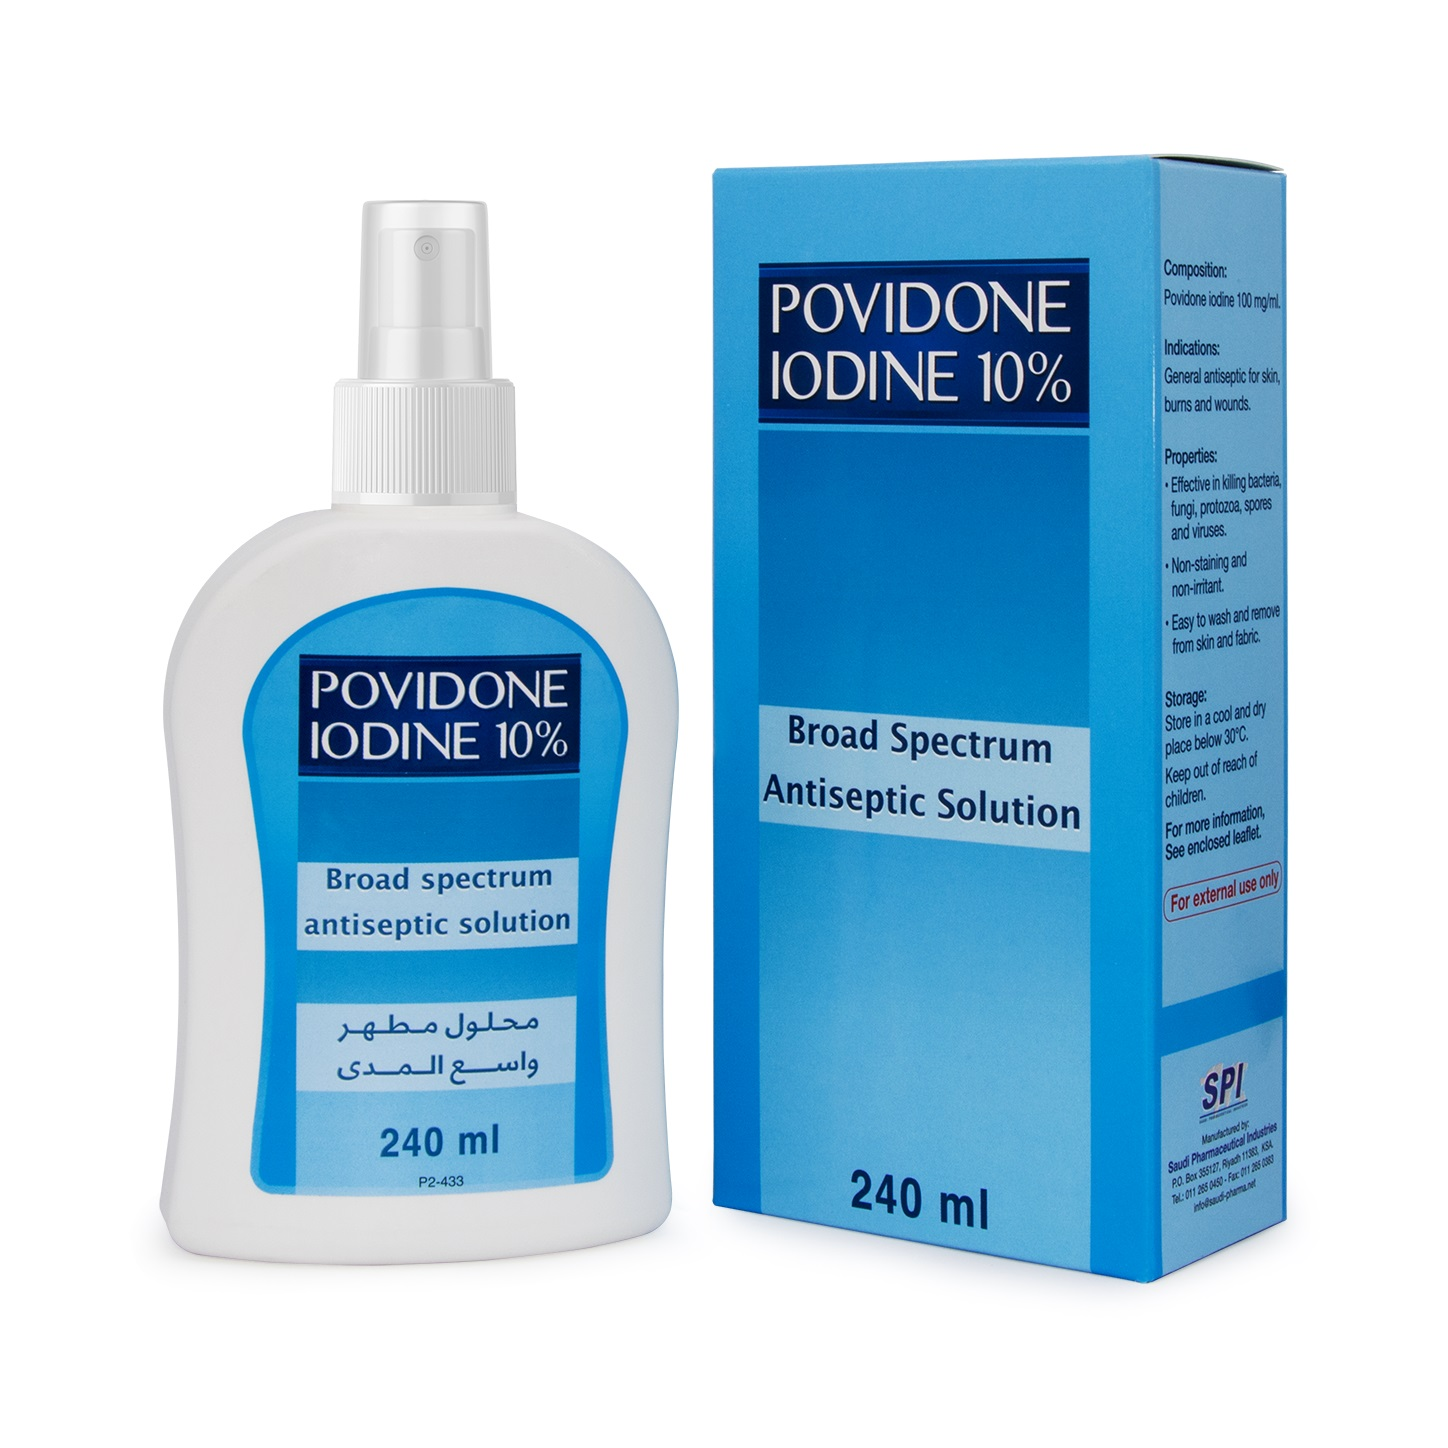 POVIDONE IODINE 10% 240 ML Spray